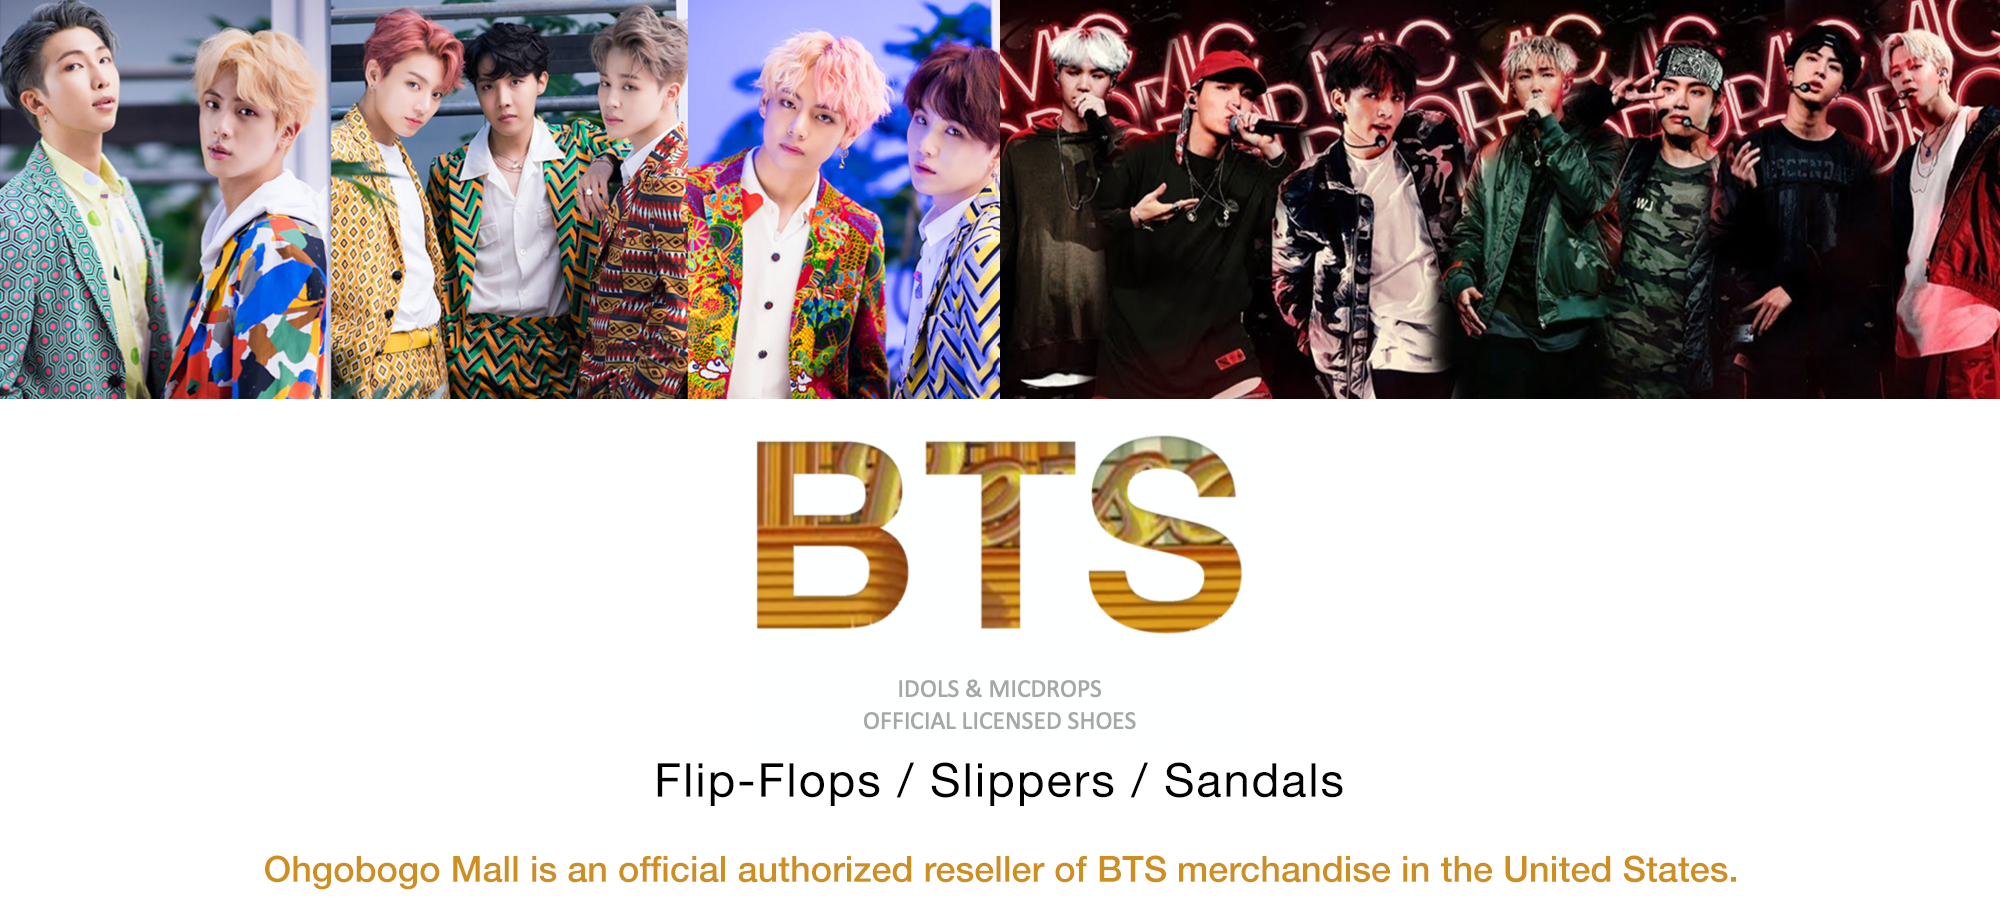 Ohgobogo Mall is an official authorized reseller of BTS merchandise in the United States.